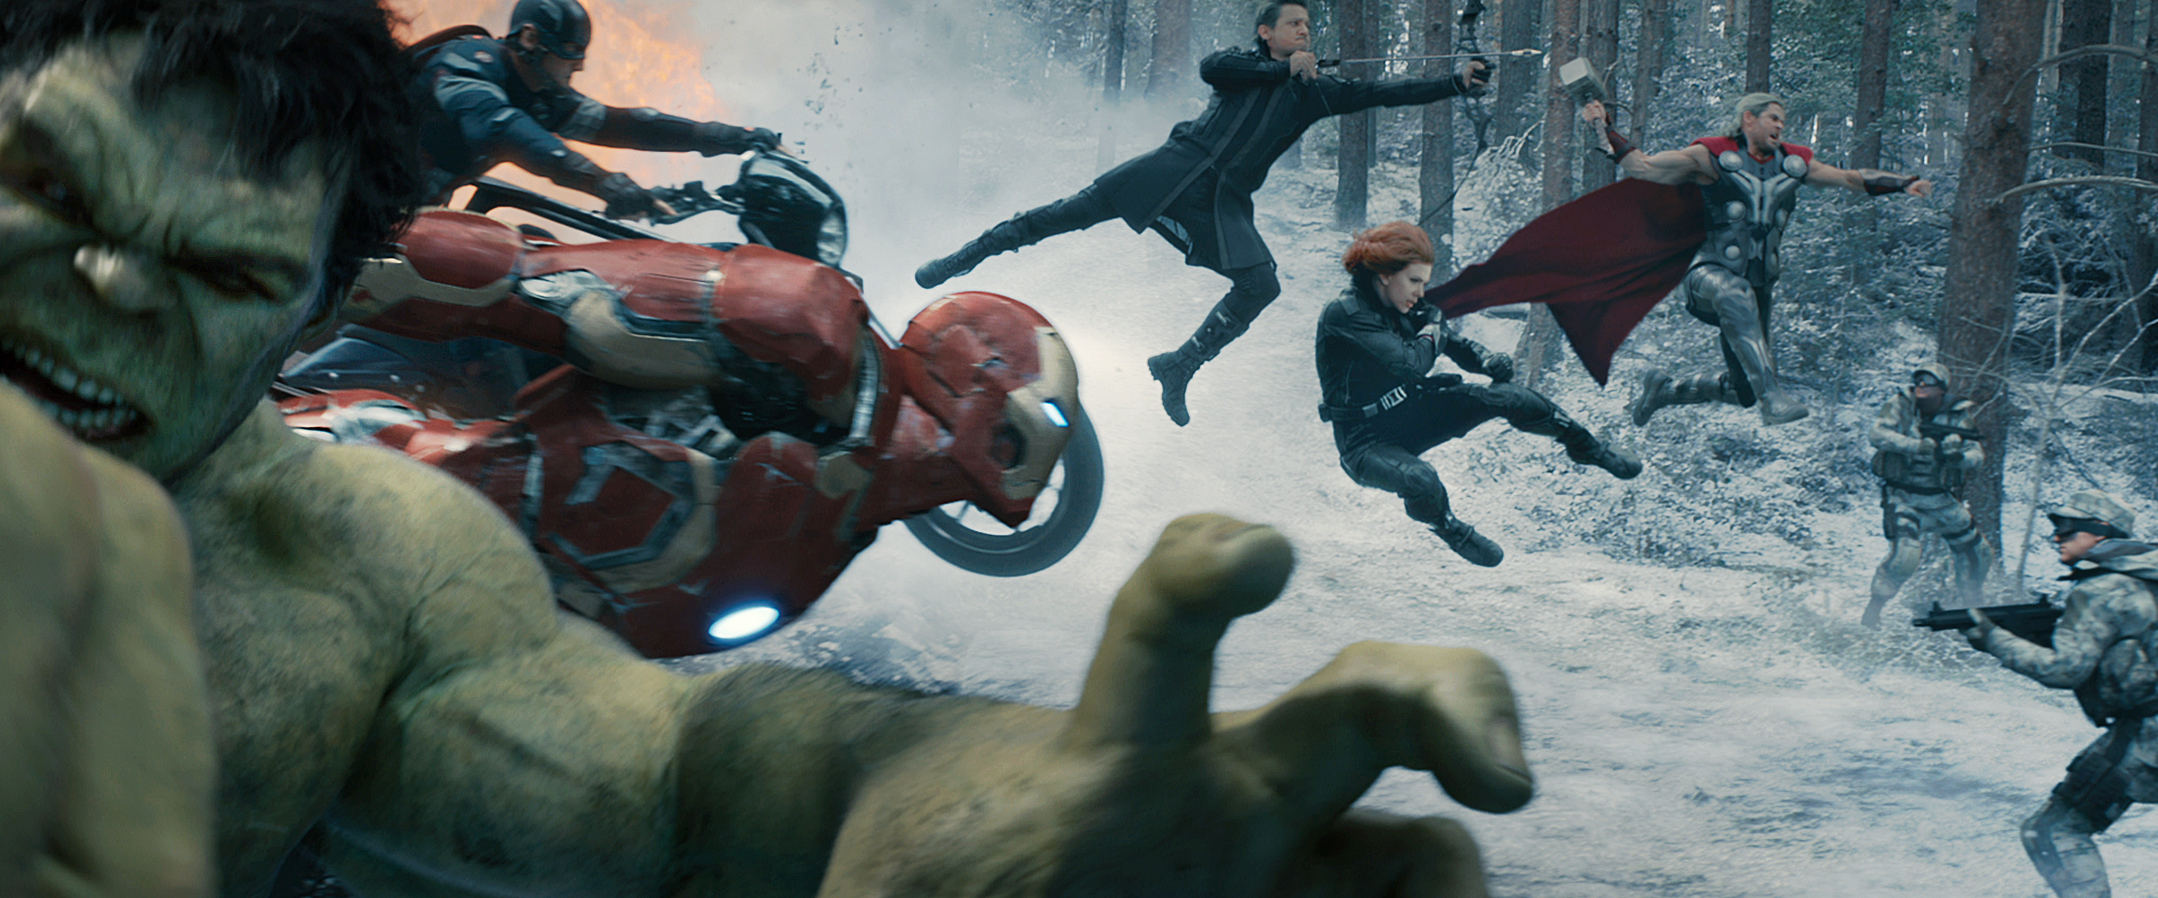 Avengers: Age of Ultron': 75+ High-Resolution Images! - Bloody ...